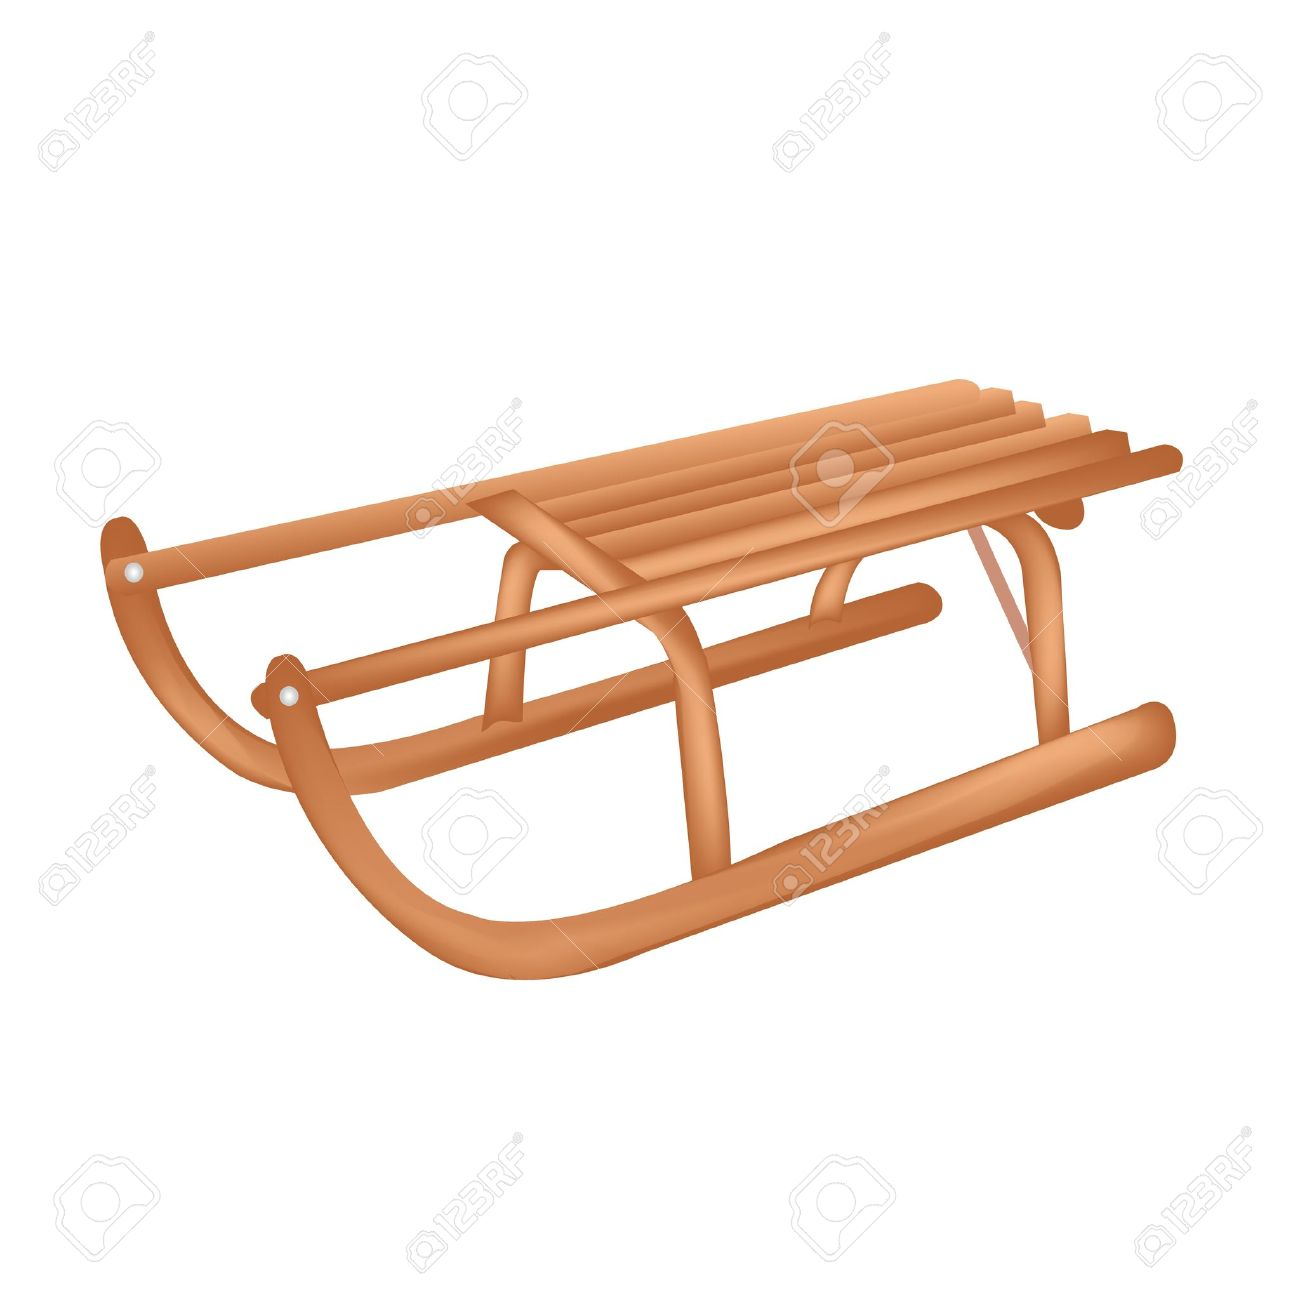 Wooden Sledge Royalty Free Cliparts, Vectors, And Stock.